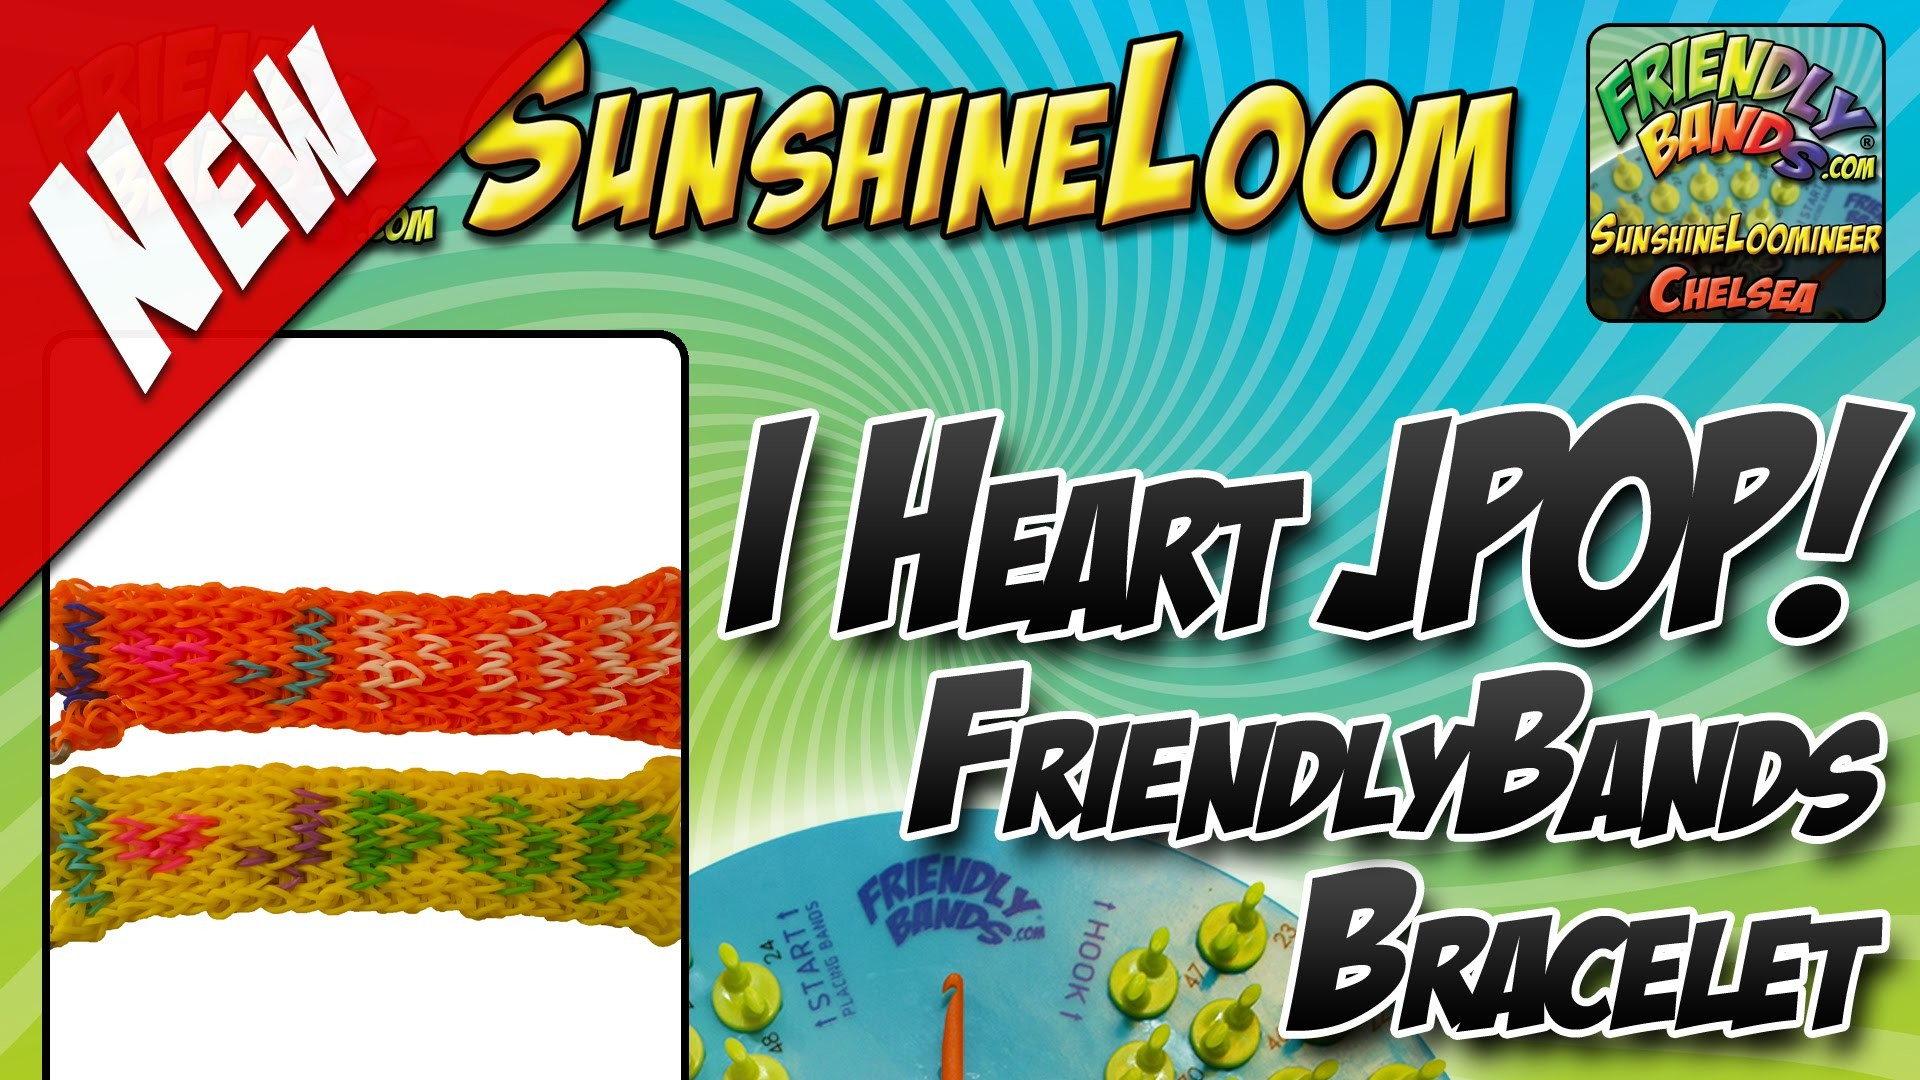 How to Make a FriendlyBands SunshineLoom - I Heart JPop Bracelet Tutorial